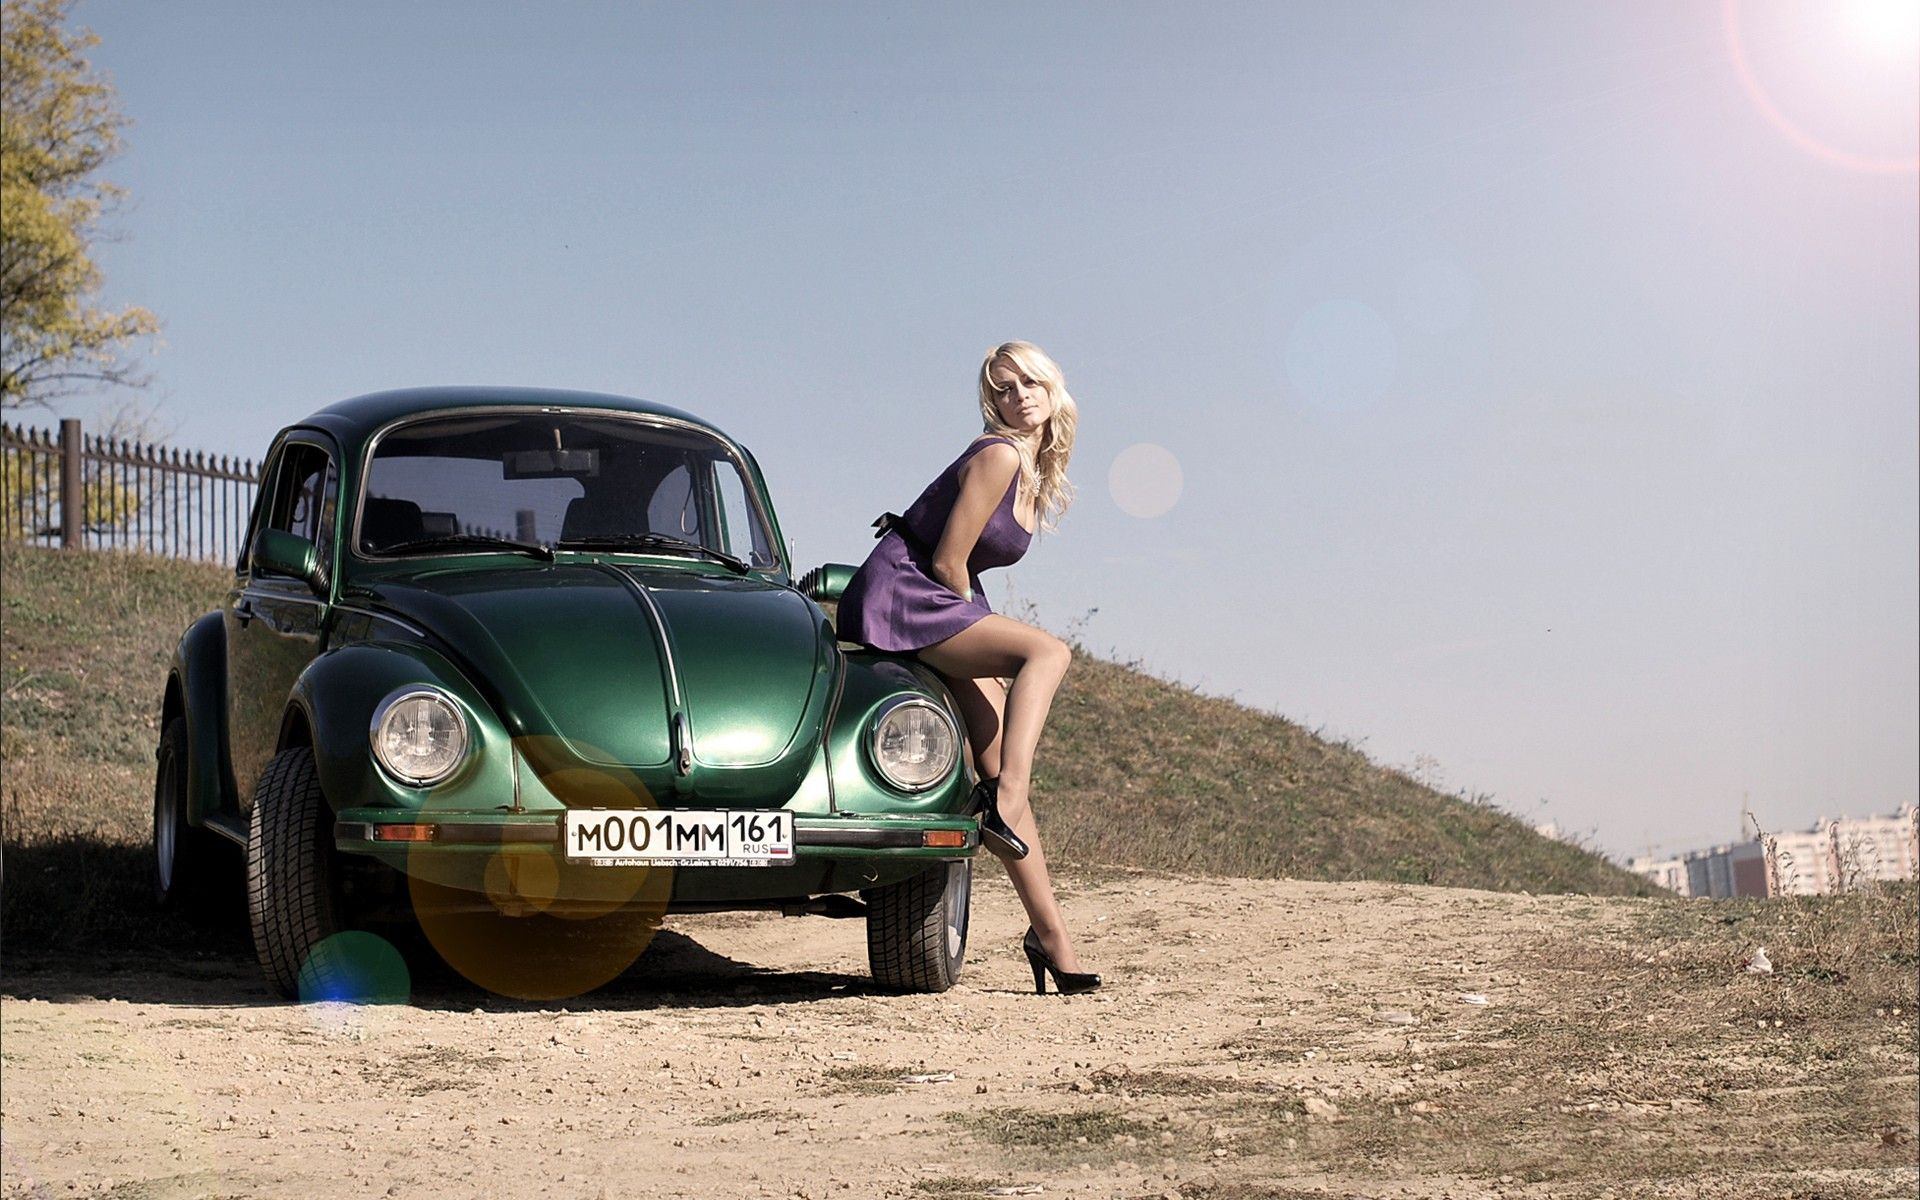 Volkswagen Beetle Wallpaper Phone Mex Cars